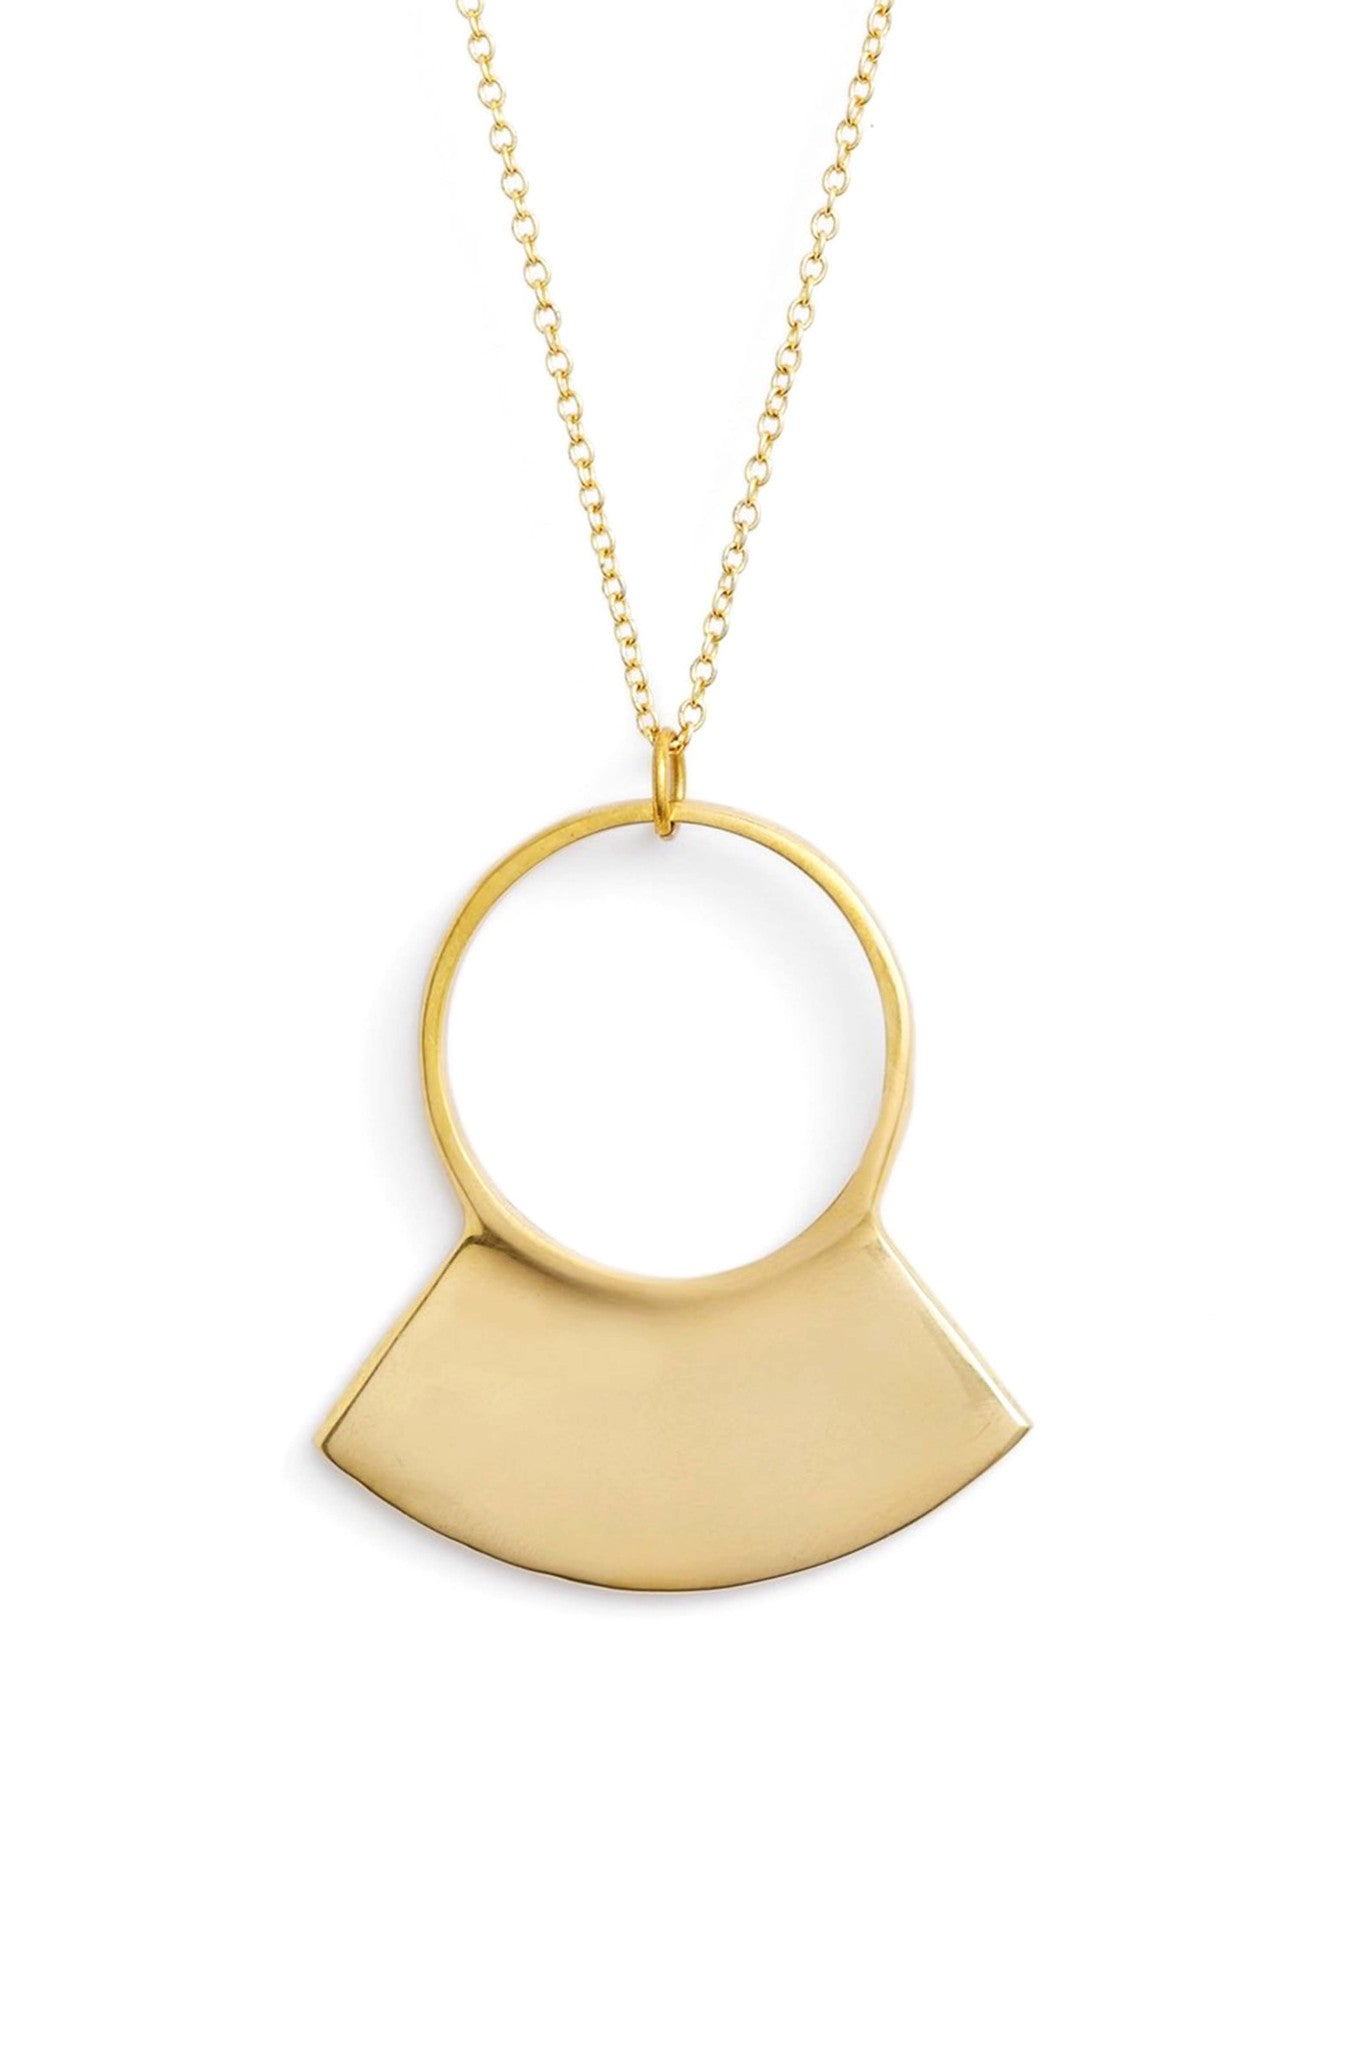 necklace pin from anthropologie simple yet jewelry statement accessories a